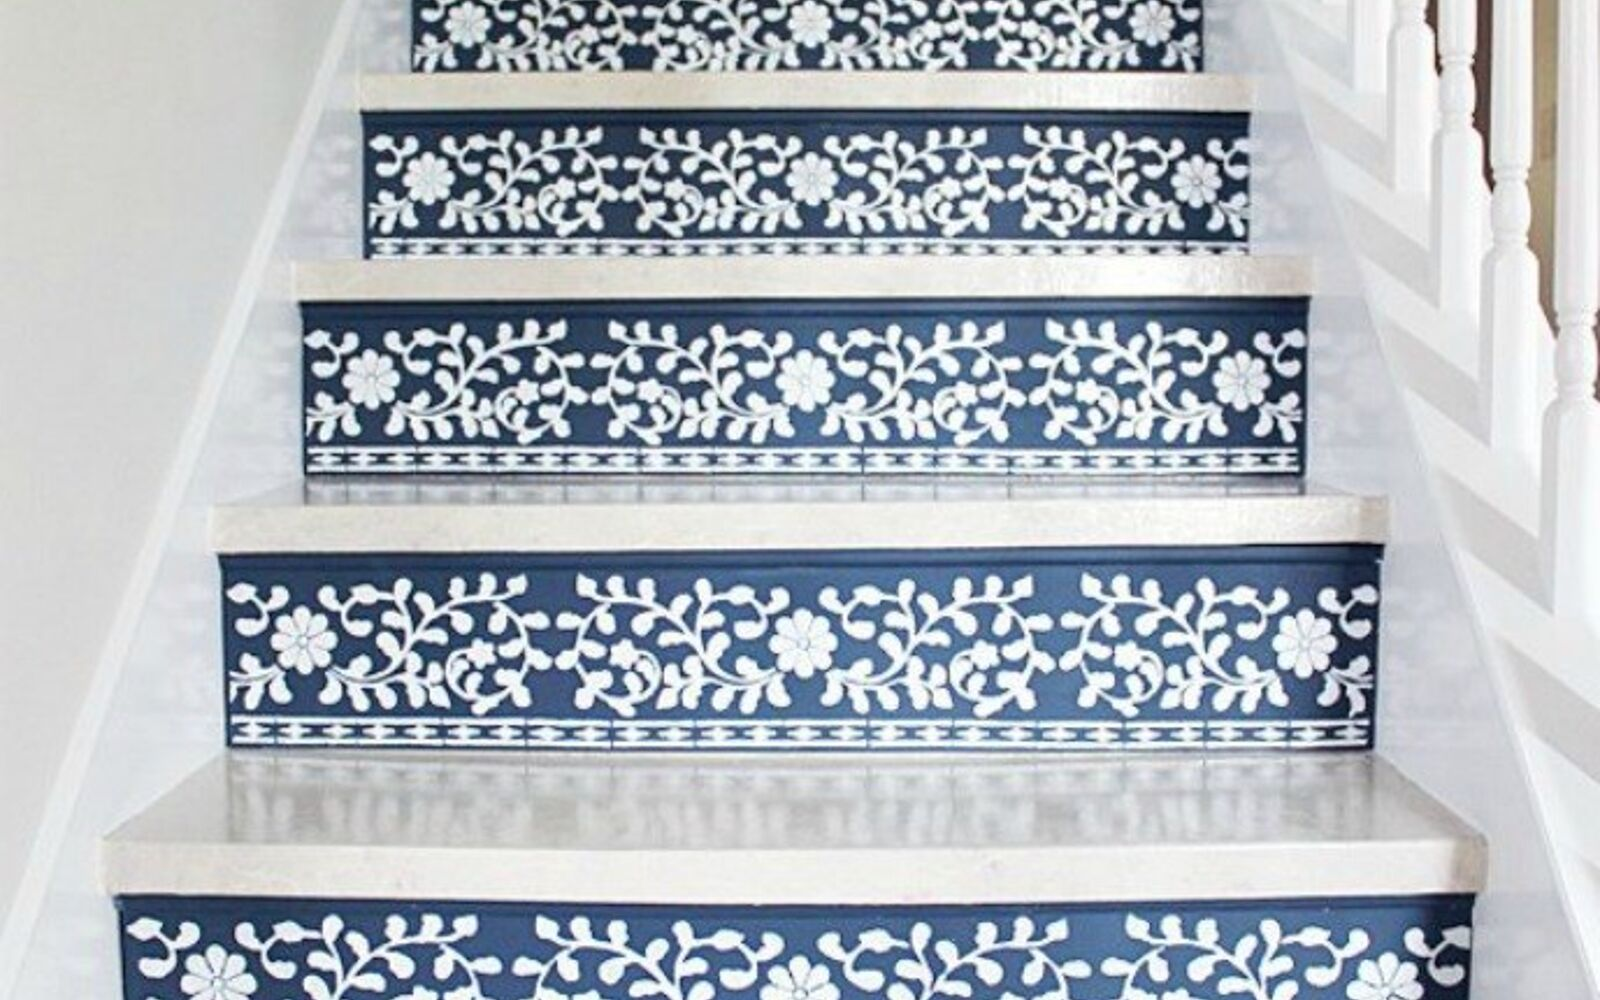 s 14 glamorous ways to upgrade your home using stencils, home decor, Make your stairs a show stopper